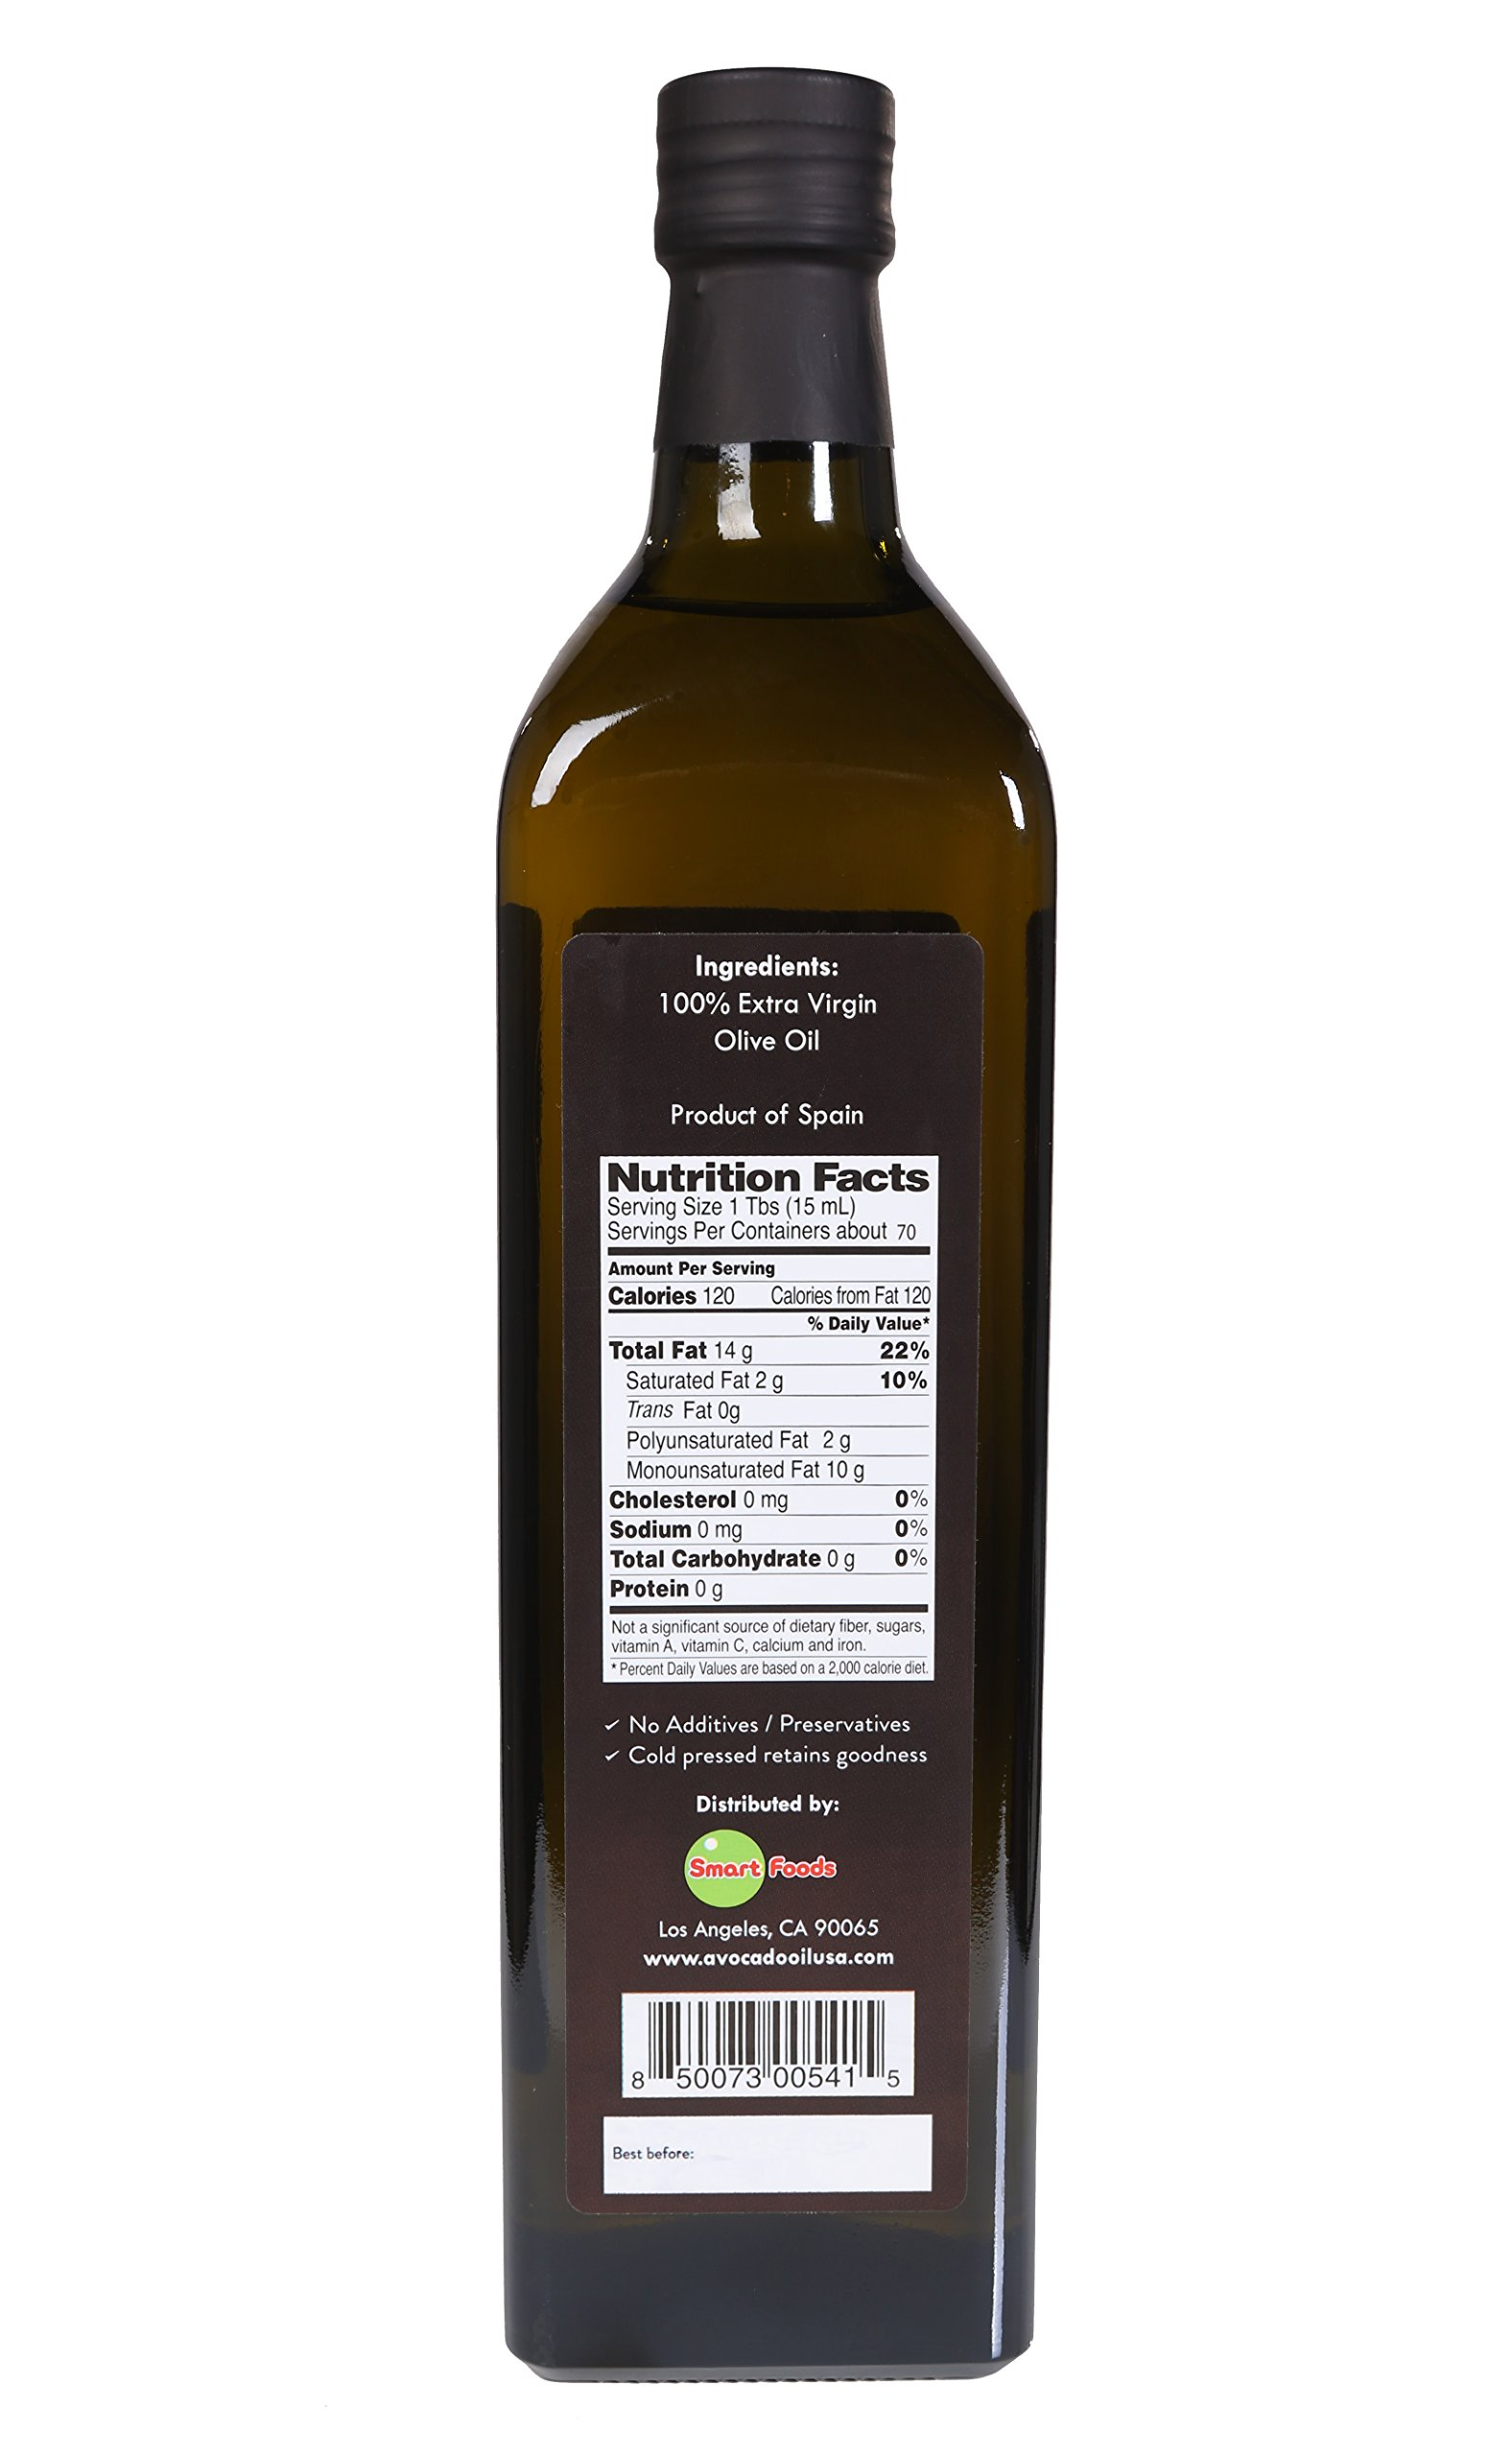 Lombardi Extra Virgin Olive Oil 33.8 fl oz Premium Quality 1 Liter Kosher Product of Spain Cold Pressed for Cooking, Baking, and Salad Dressing by Lombardi (Image #3)